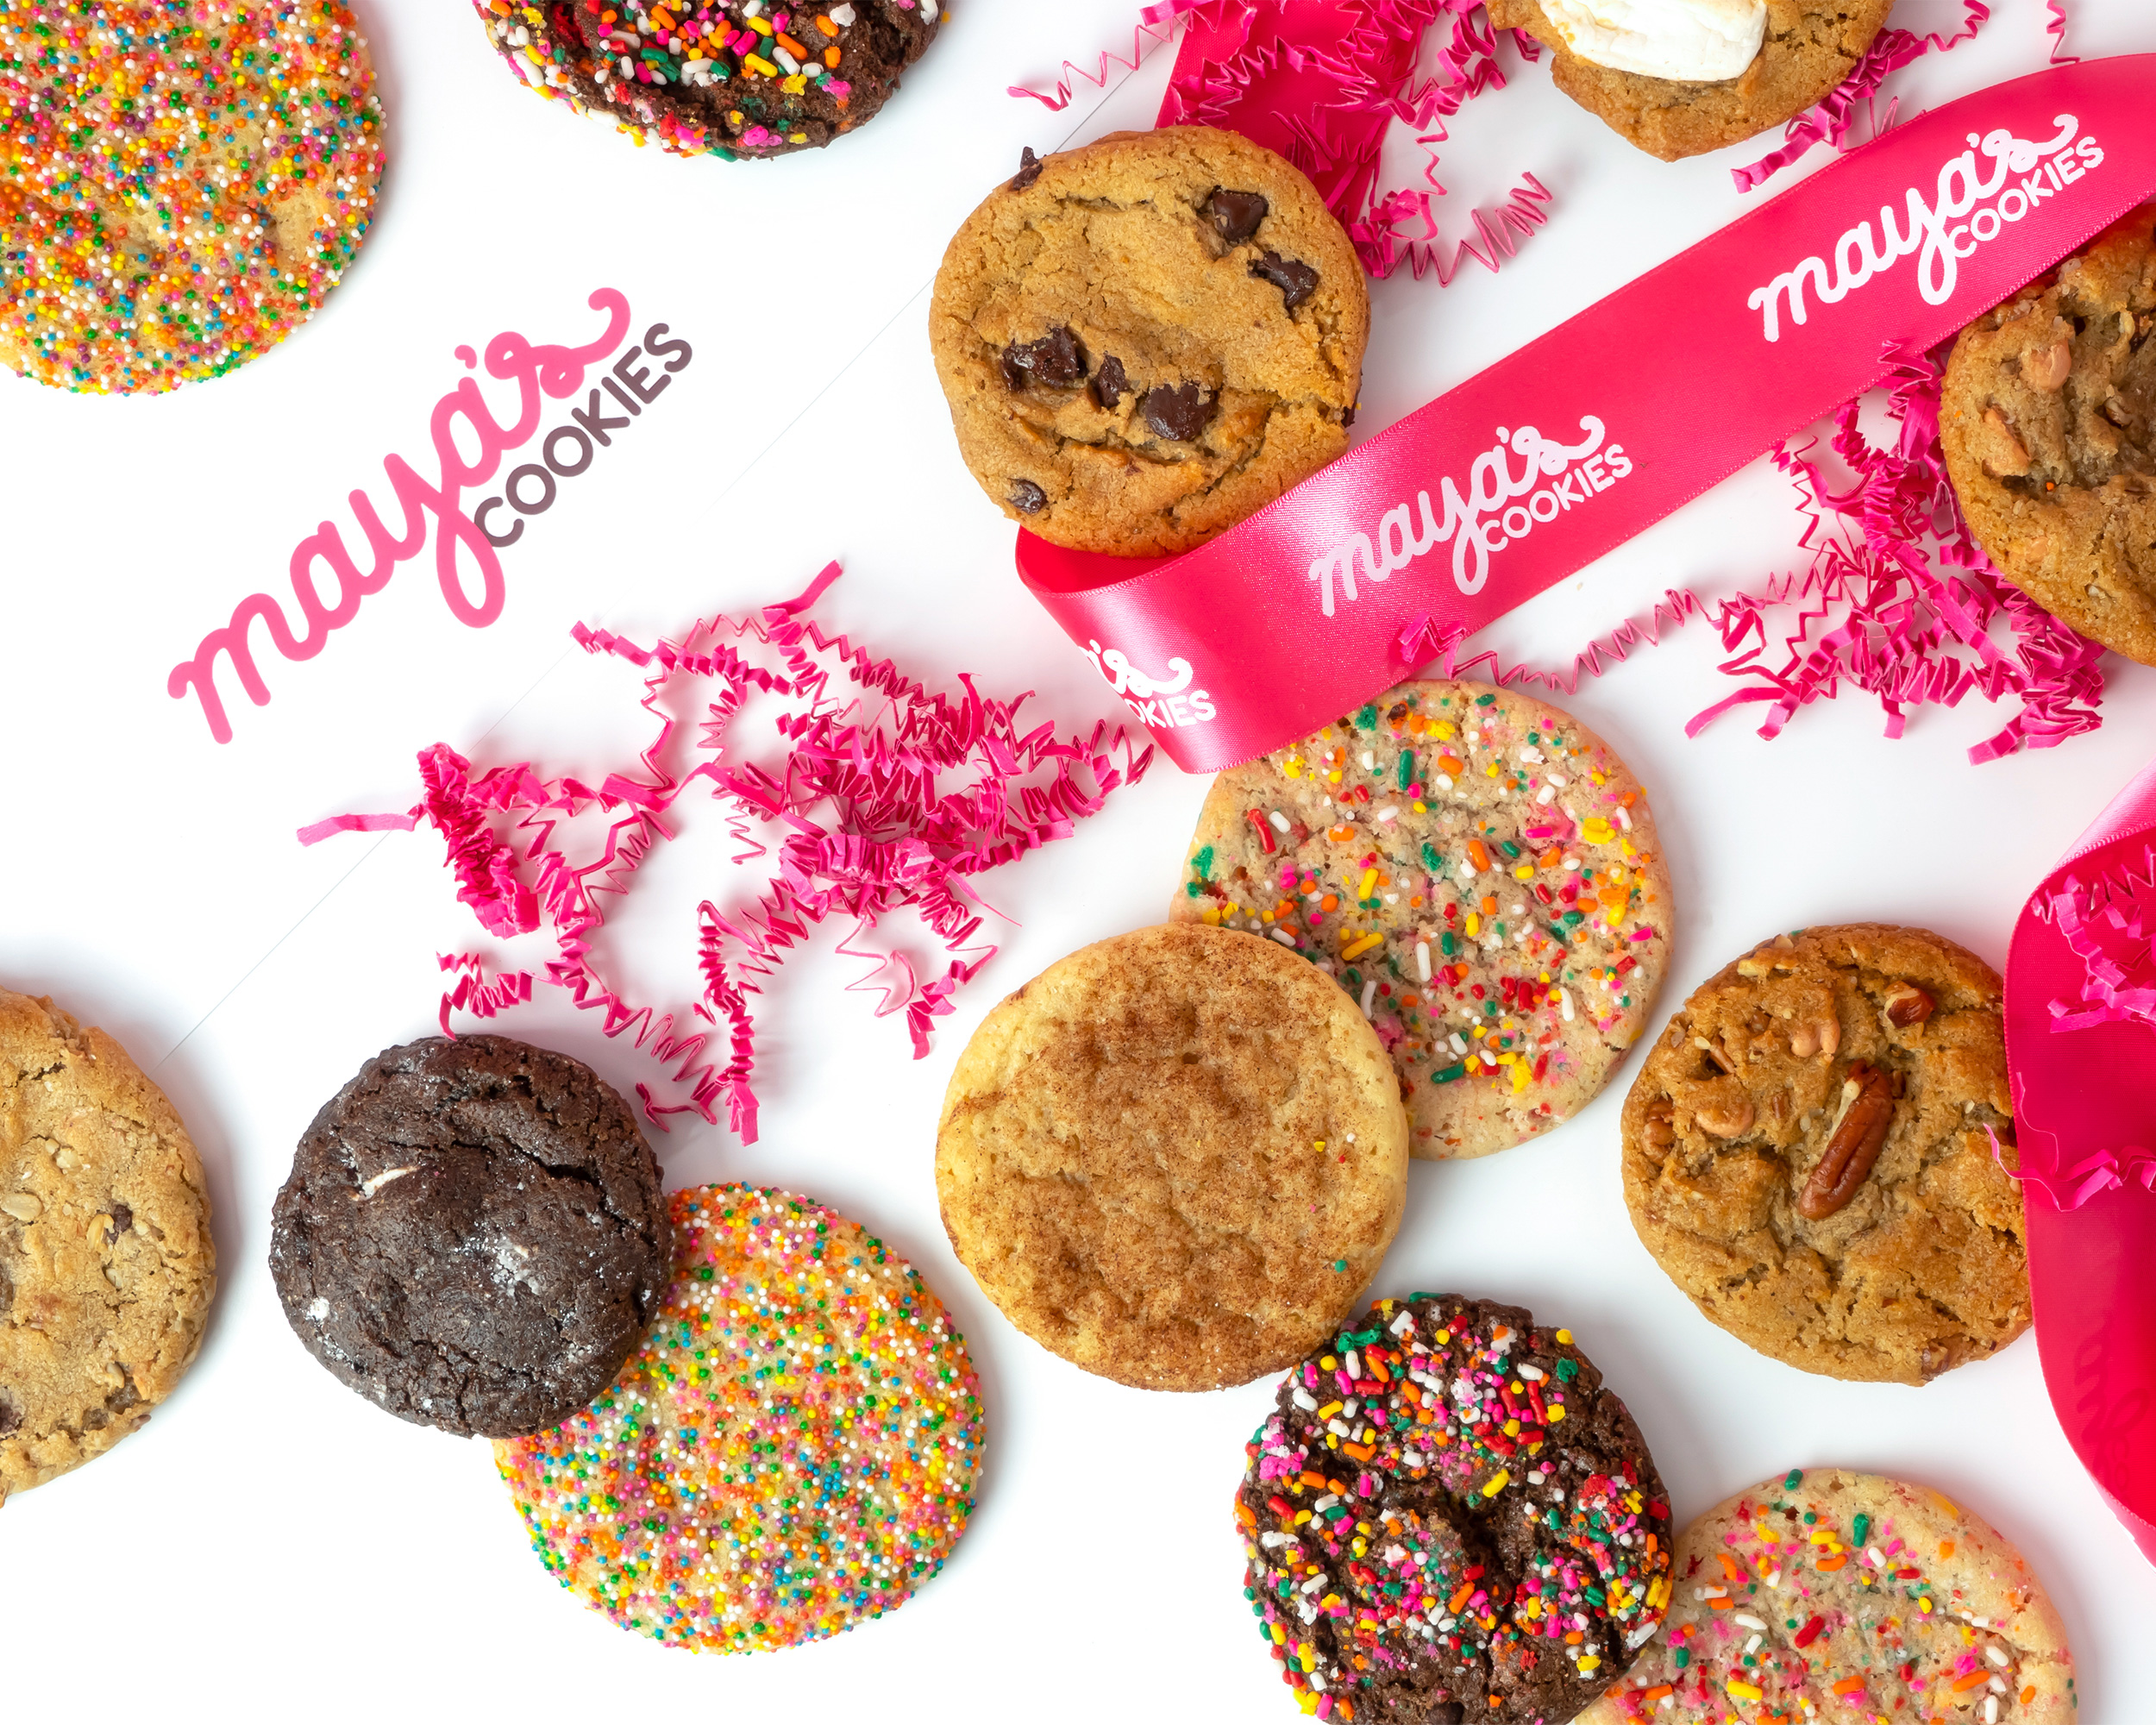 Brand Content for Mayas Cookies